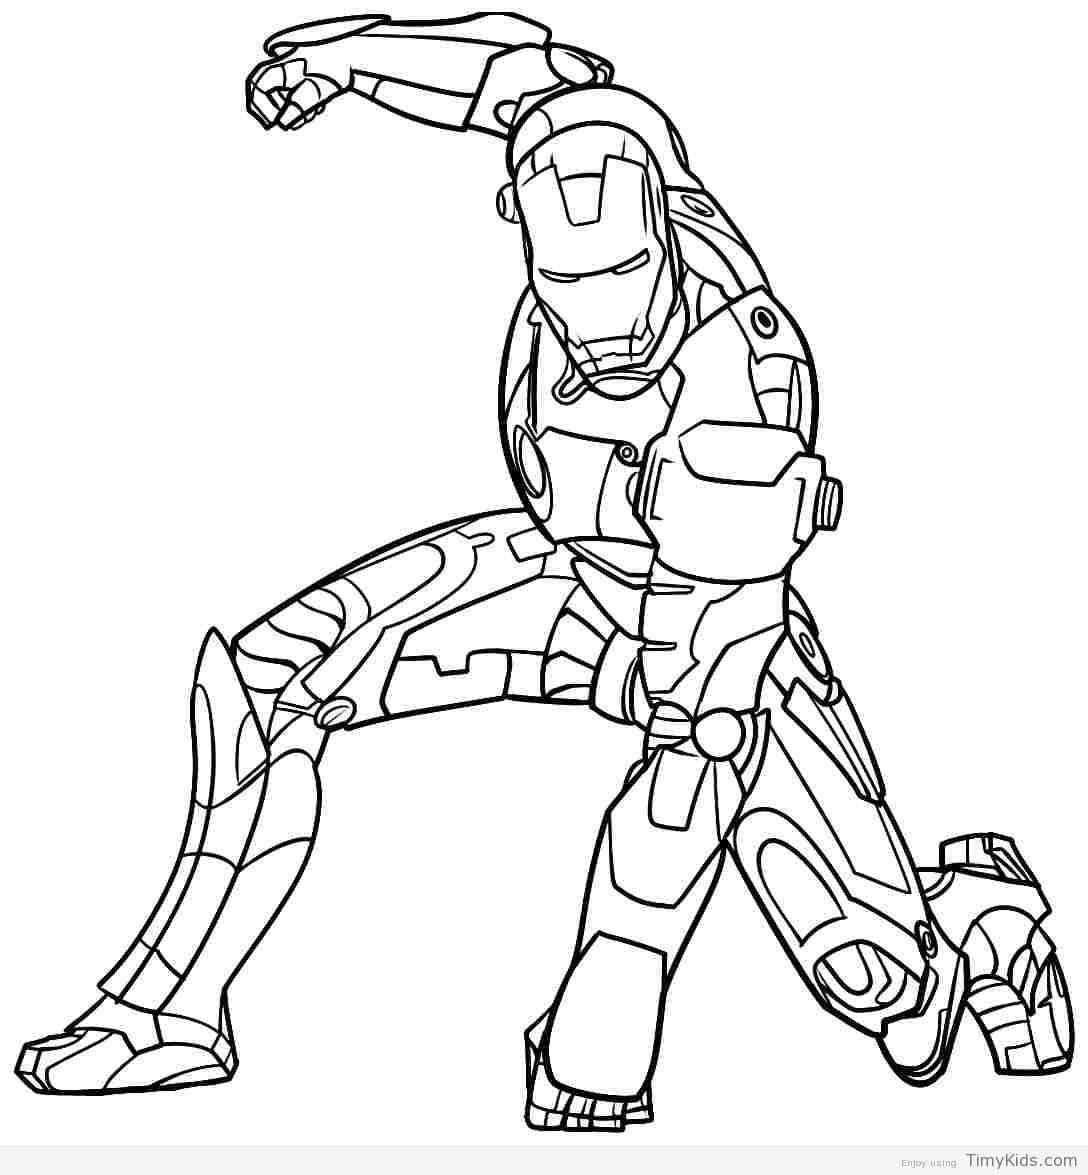 iron man printable images free printable iron man coloring pages for kids best man iron printable images